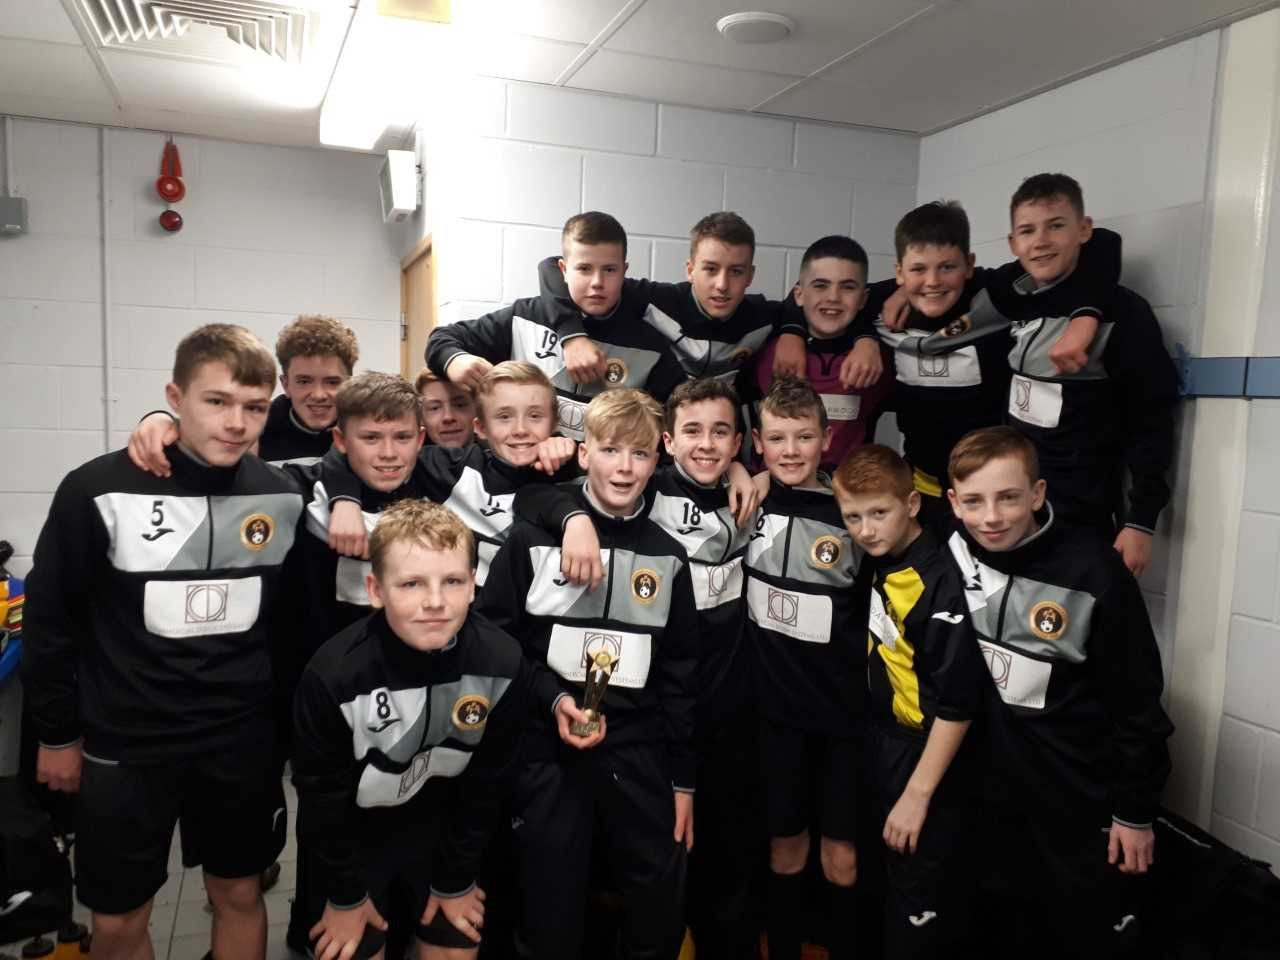 United 2005s continued their excellent form as they booked their spot in the last 32 of the Scottish Youth FA Cup